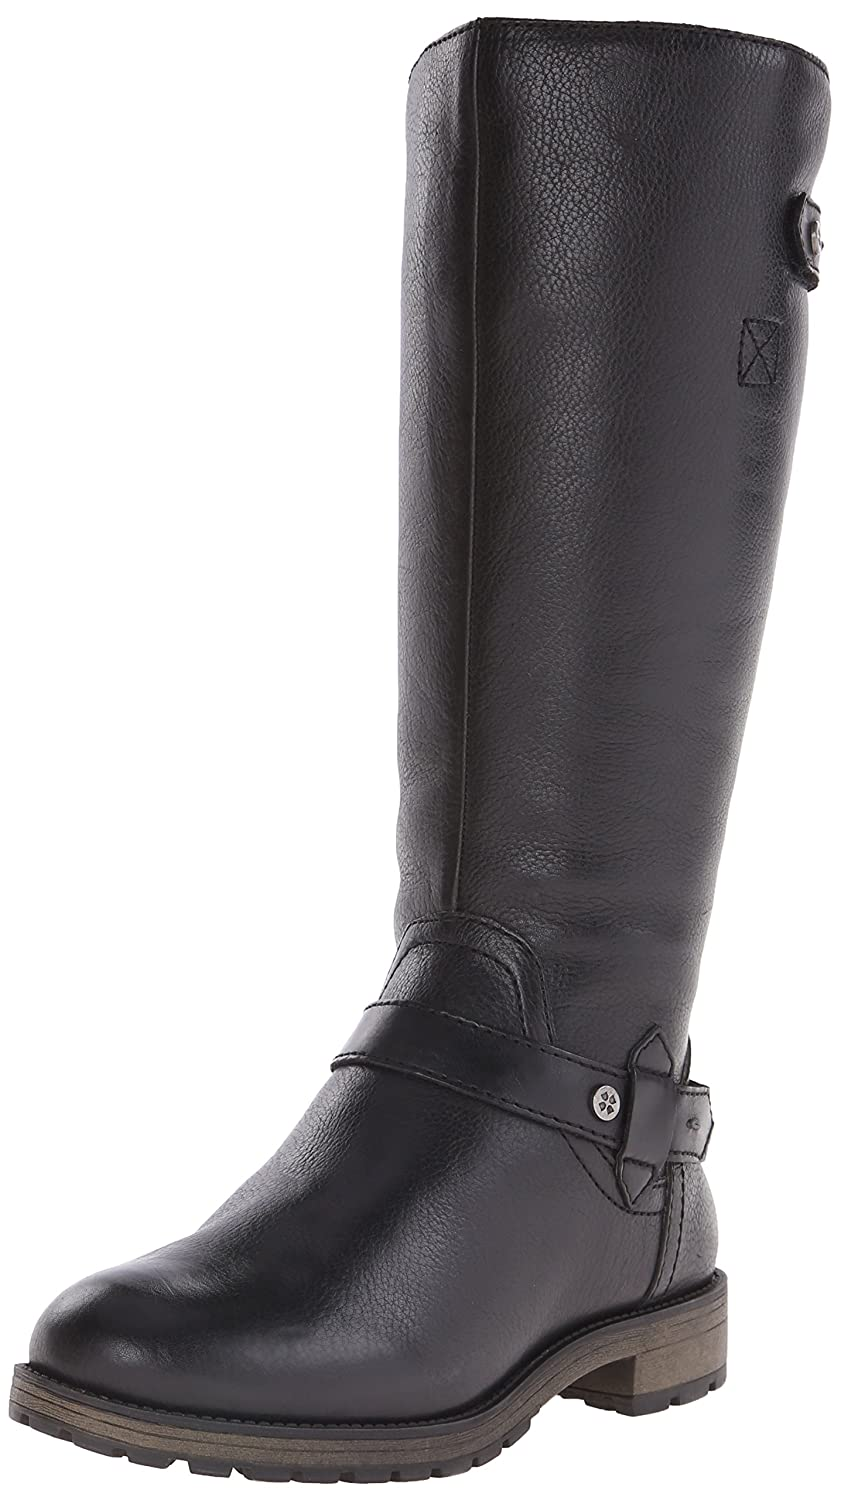 Naturalizer Women's Tanita Riding Boot B00RBW71KM 9.5 B(M) US|Black